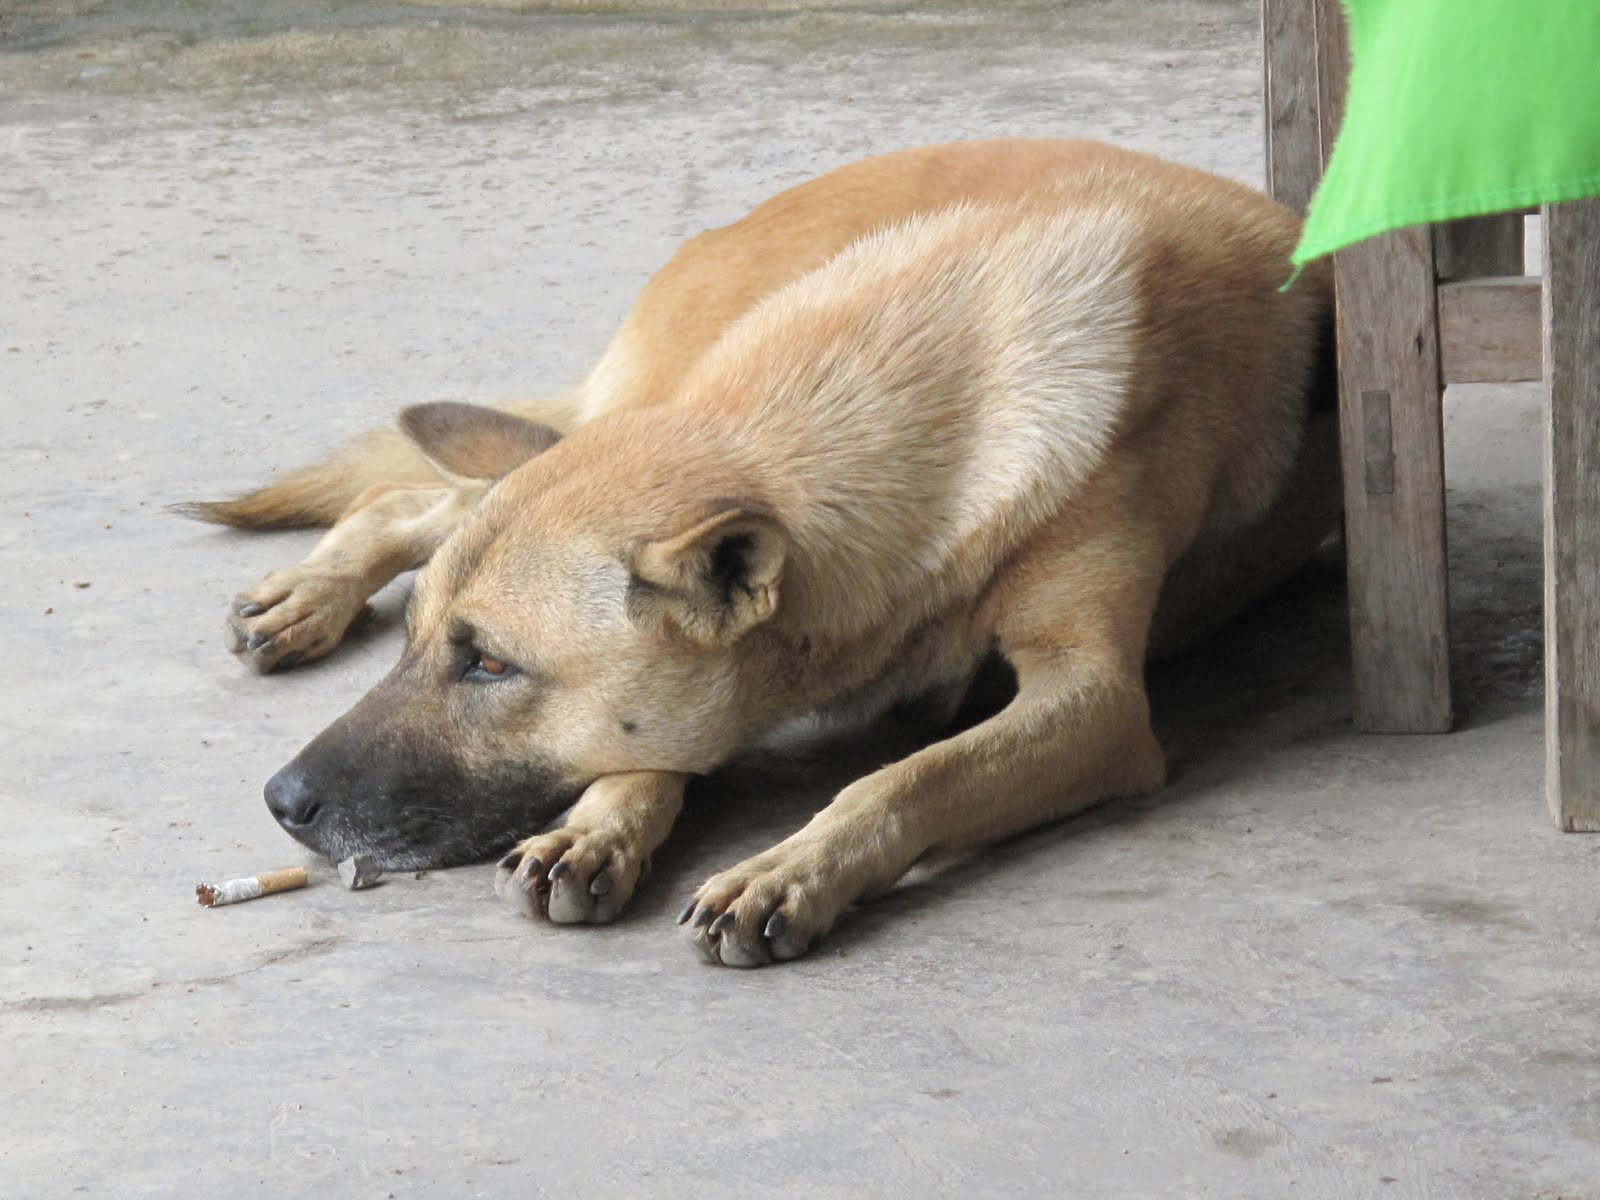 Spotted Dog is Typical of Myanmar's Uniqueness - MyanmarBurma.com